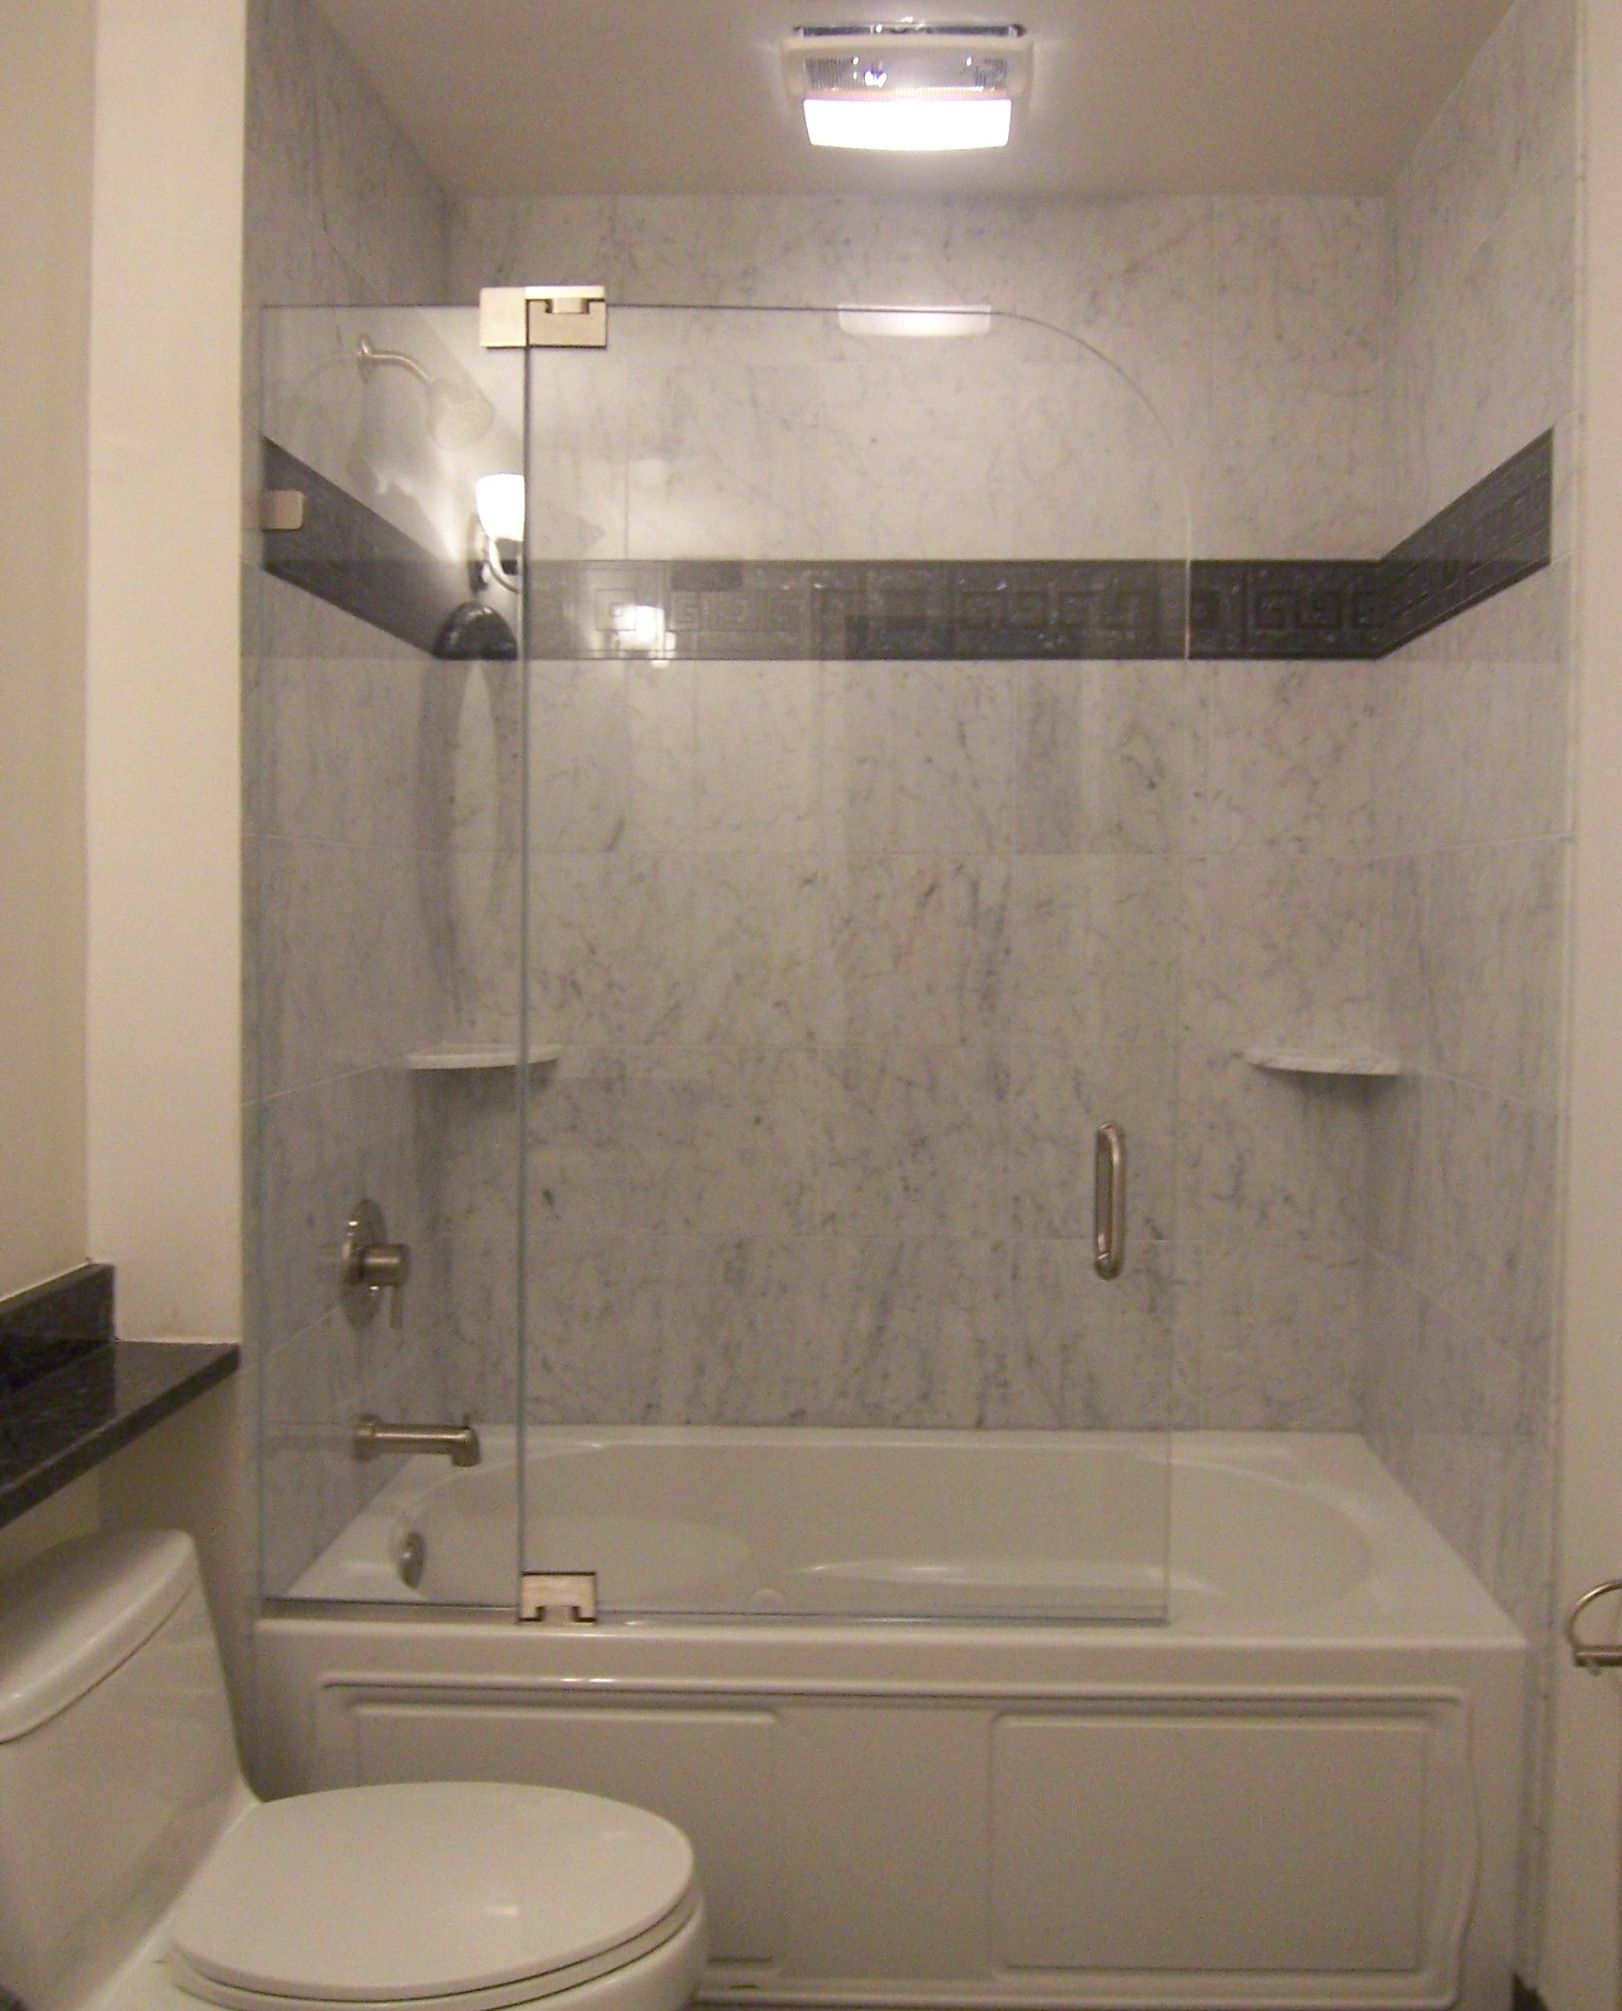 Frameless Shower Doors For Tub Enclosures BEAUTIFUL GLASS DOOR THAT ...